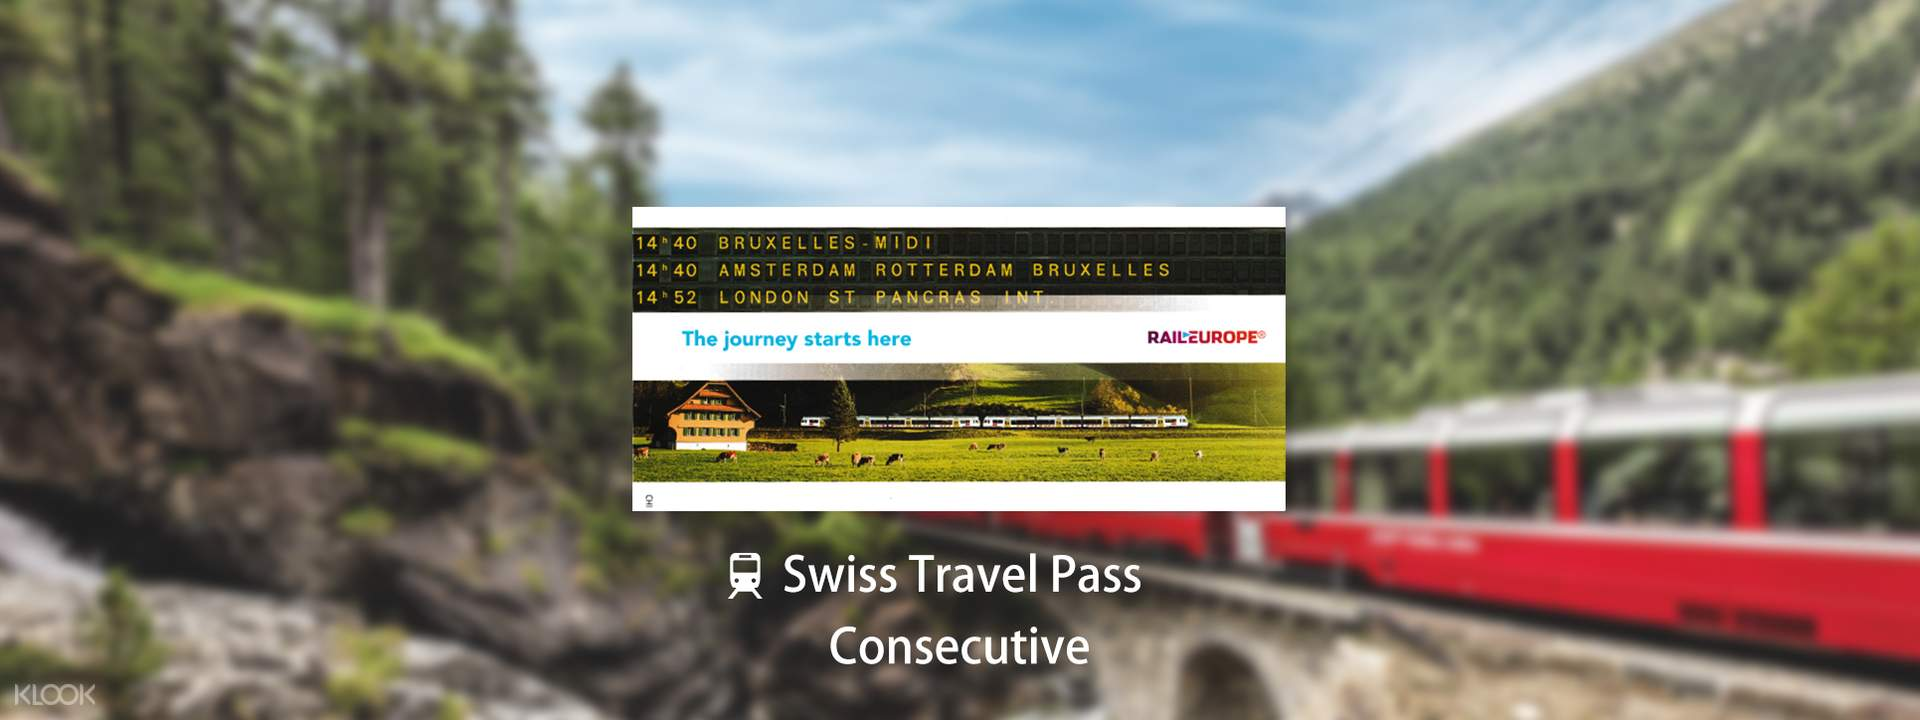 Swiss Travel Pass (Consecutive 3, 4, 8 or 15 Days) in